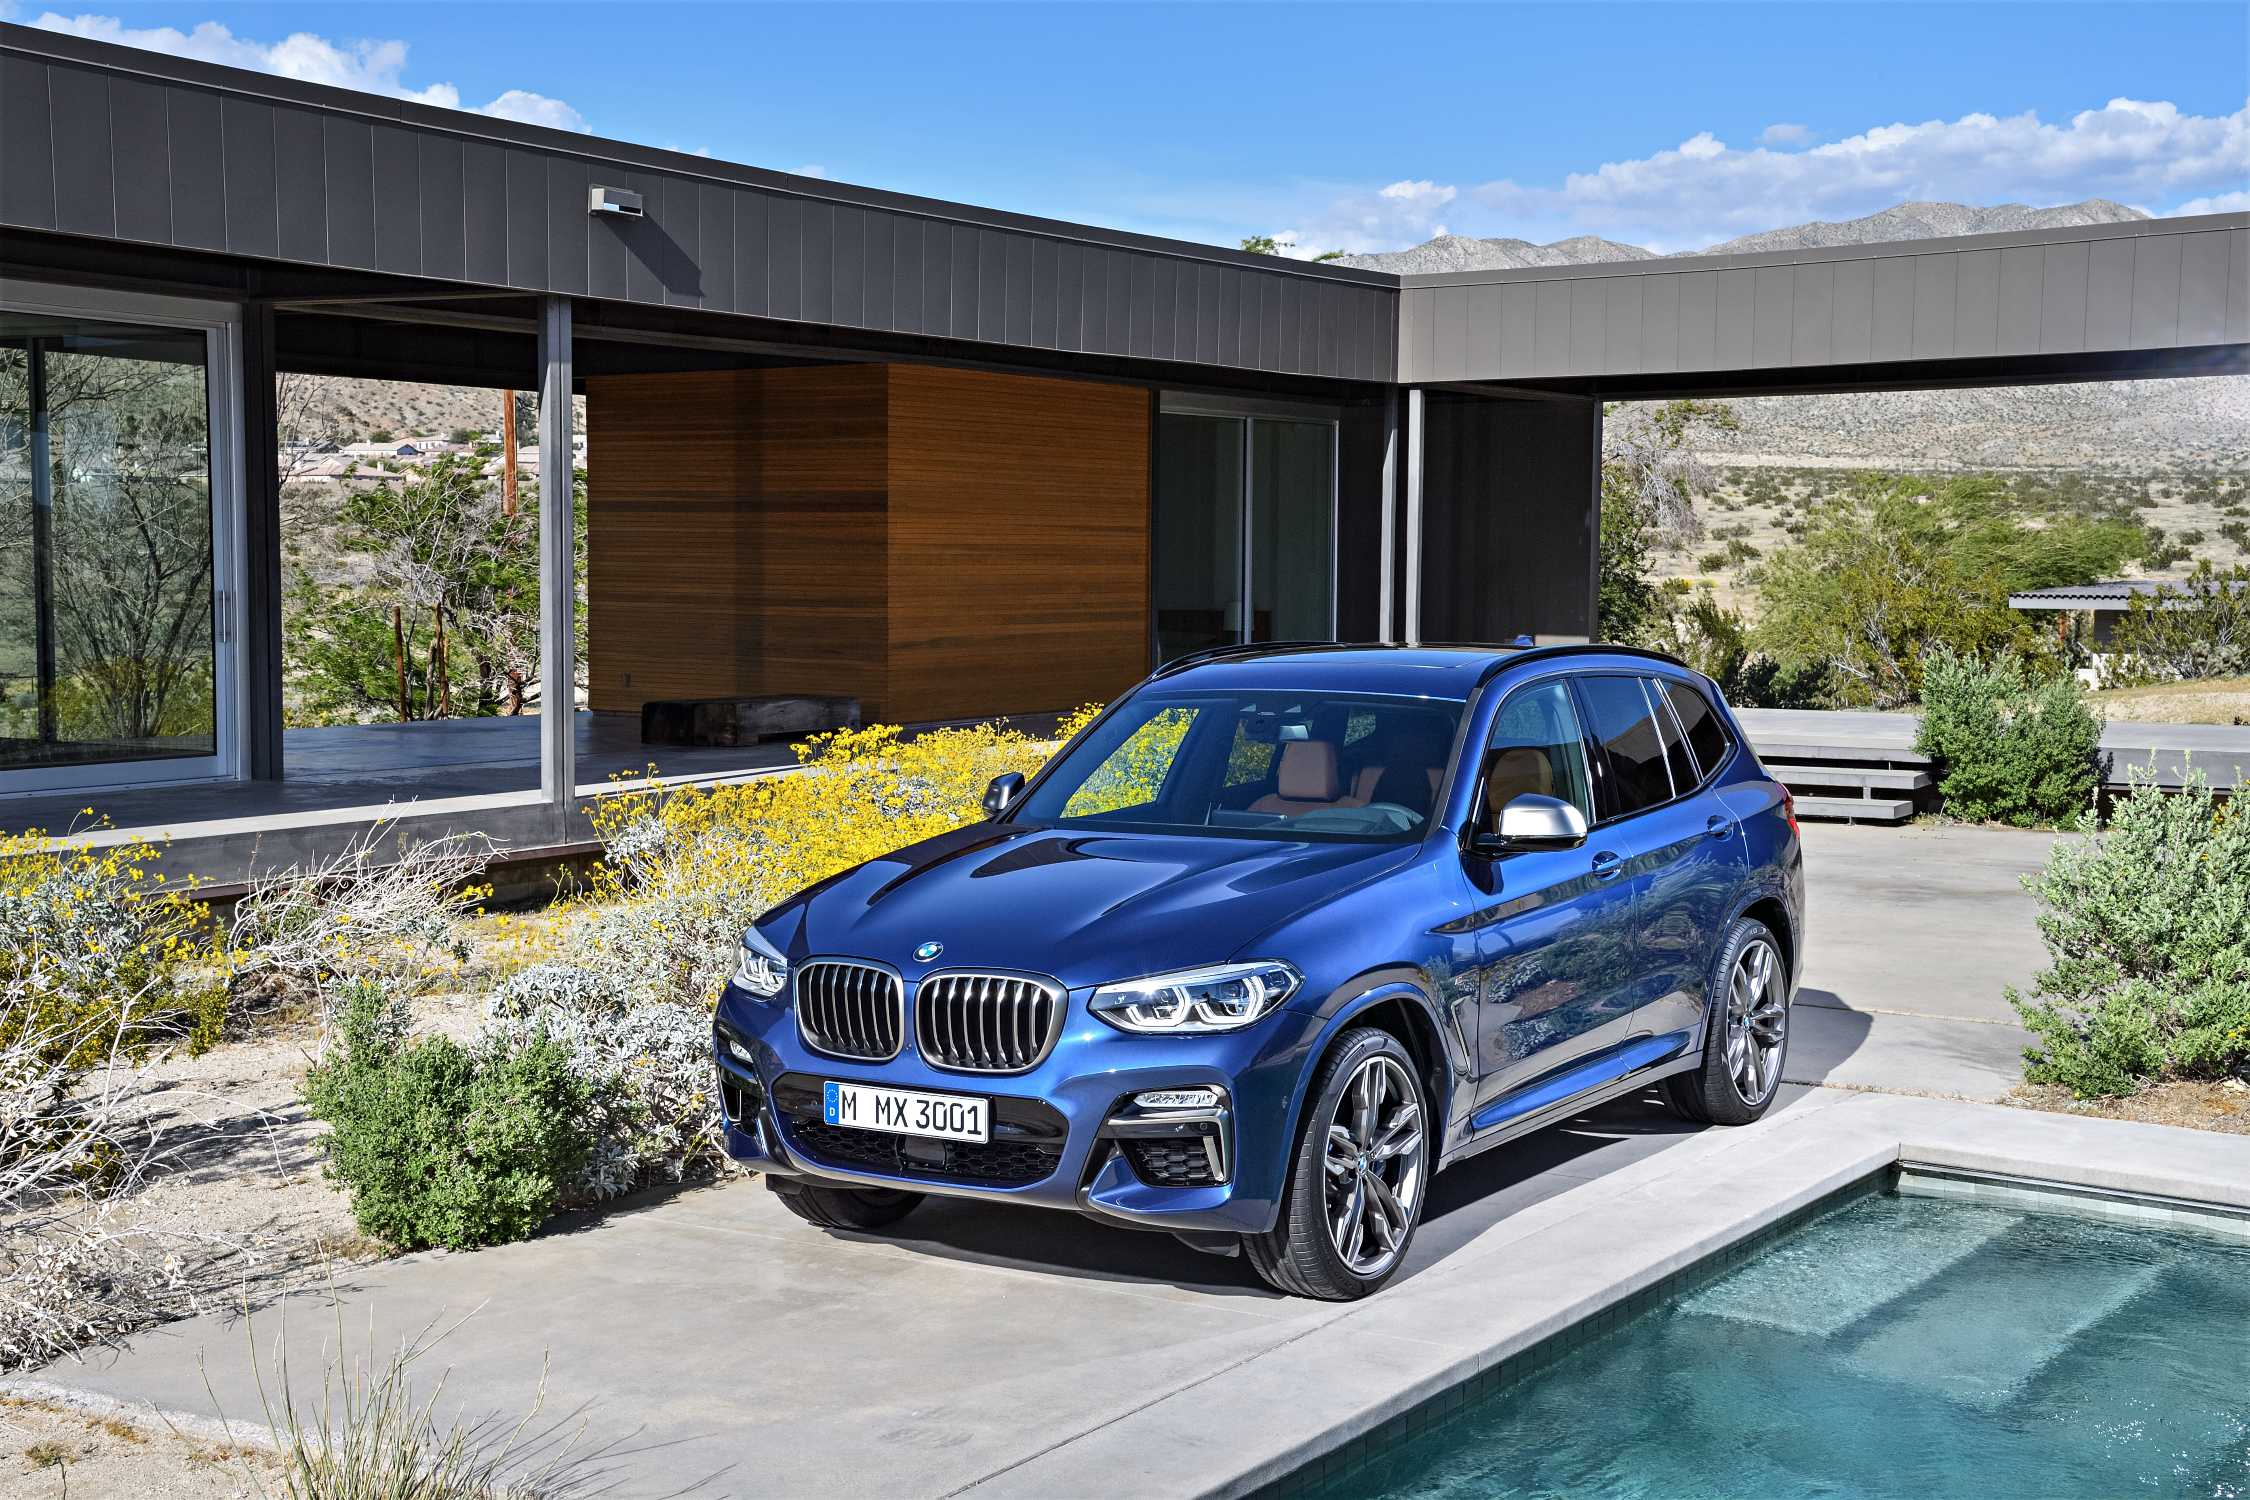 2018 X3 Vs X5 >> The new BMW X3 xDrive M40i (Exterior color: Phytonic Blue metallic, upholstery: Leder Vernasca ...